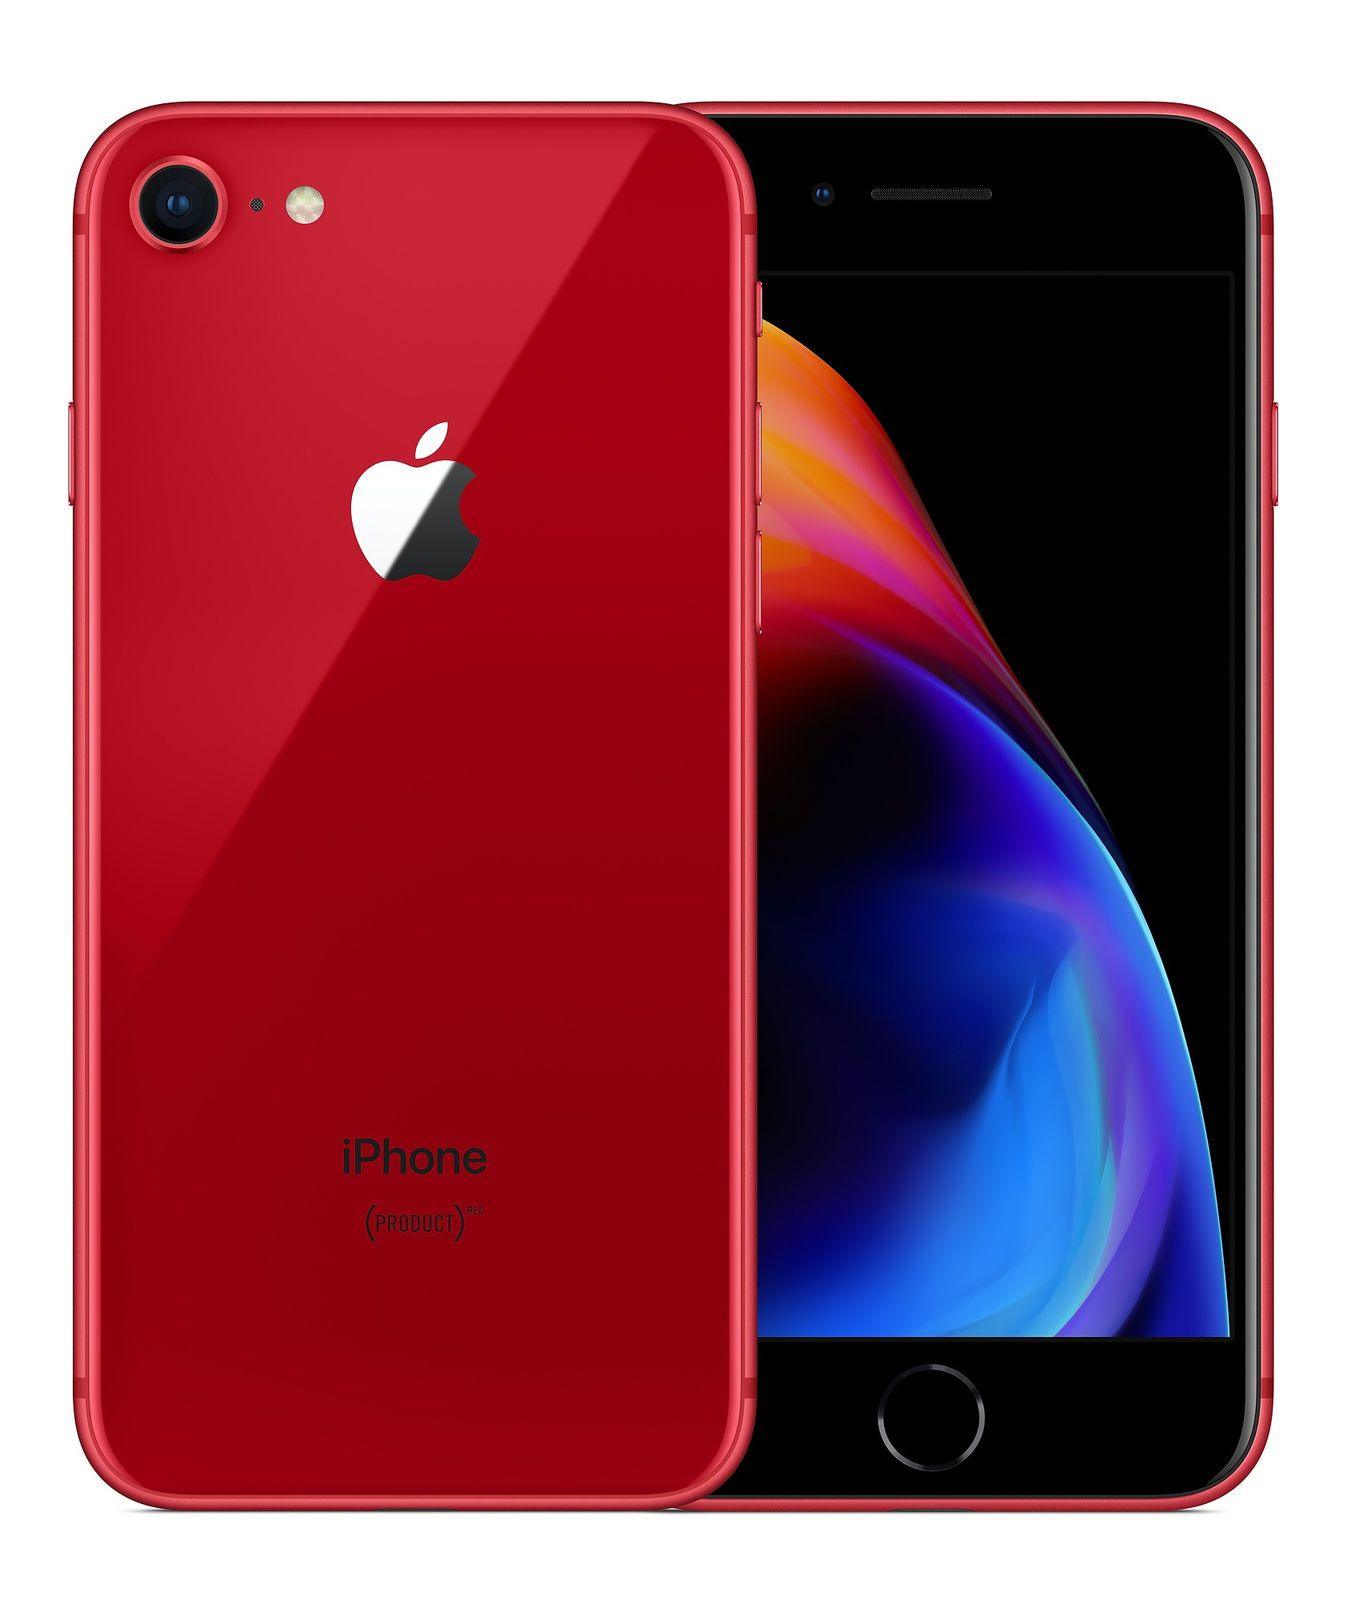 Mint Apple Iphone 8 64gb 256gb At T H20 Cricket Gsm Warranty 2019 Ebay Iphone Apple Iphone Apple Phone